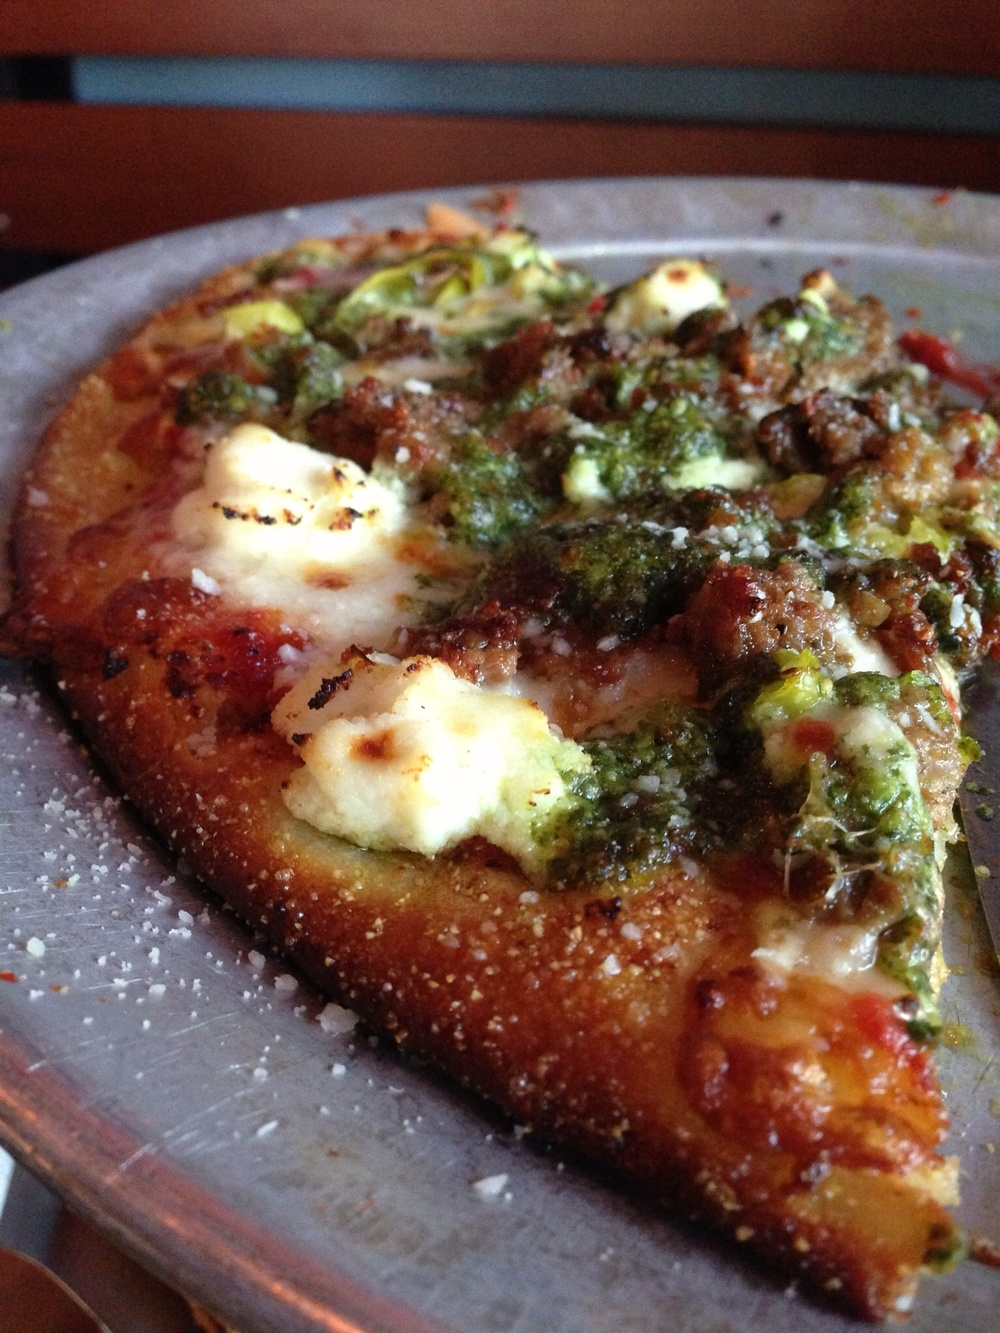 Thin crust variety at Blue Line Pizza adds a crispy, perfectly charred crust.